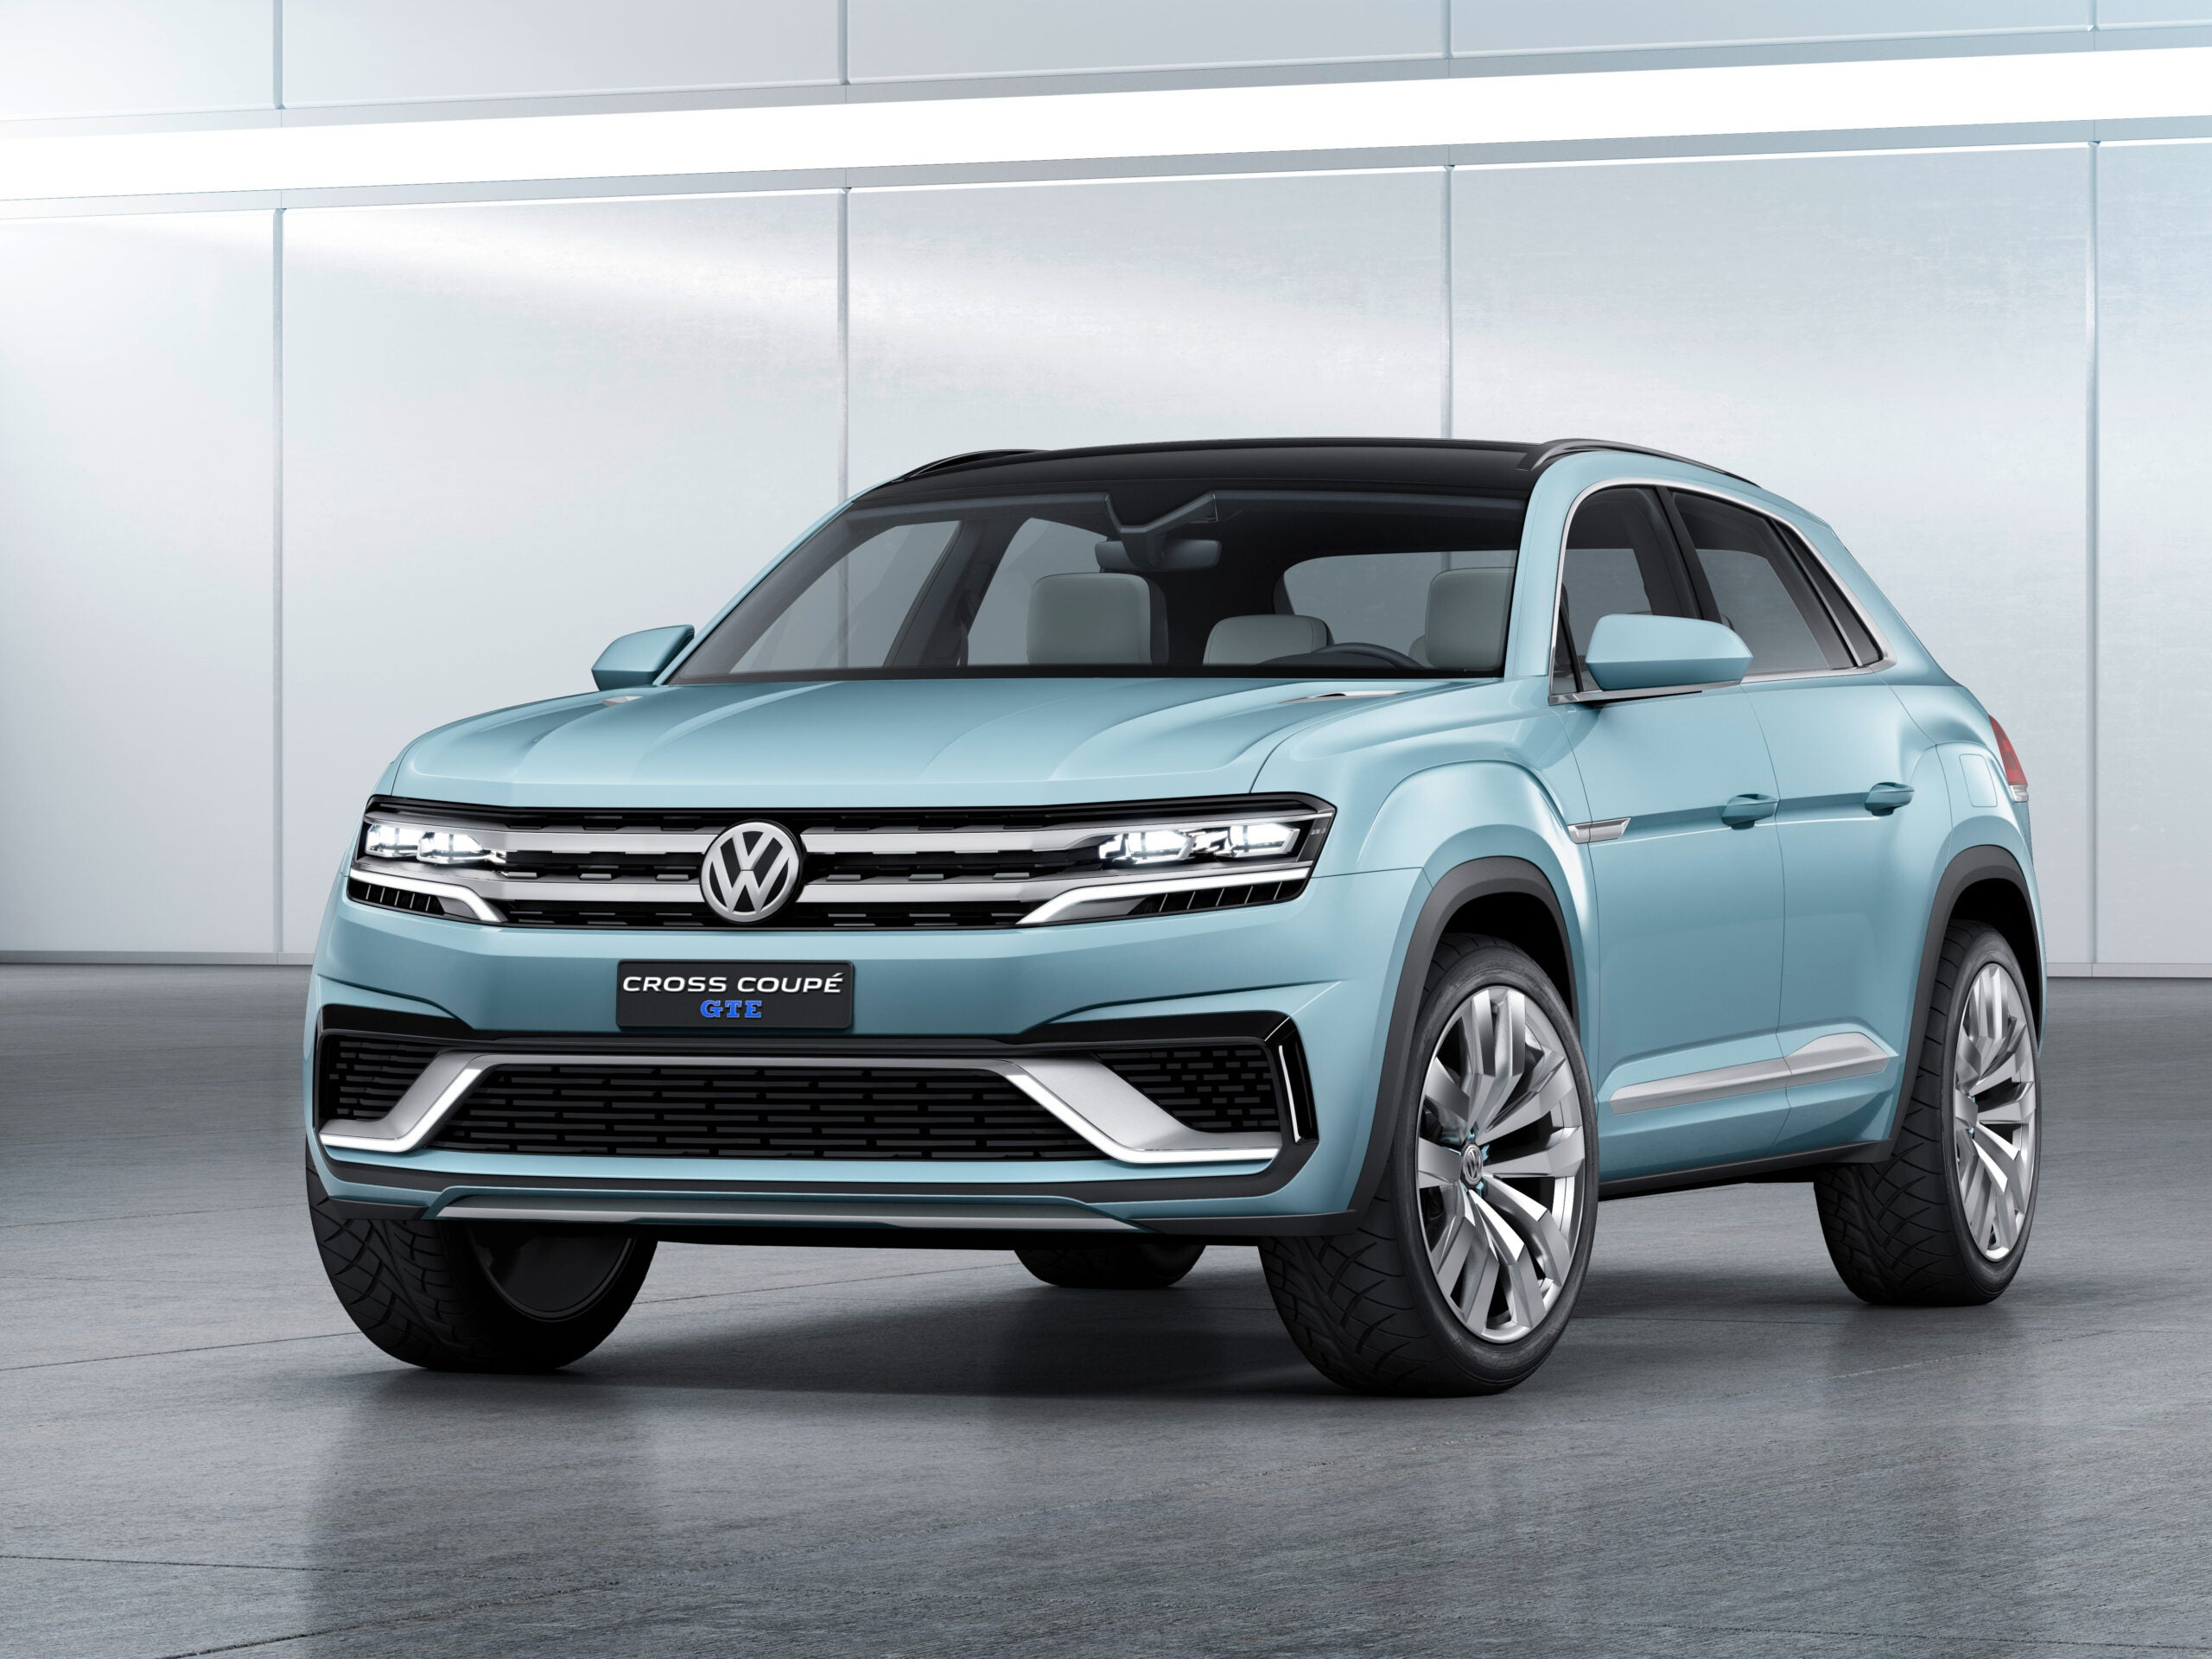 2015 Detroit Auto Show: Volkswagen Cross Coupe GTE: A Shape Of Things To Come